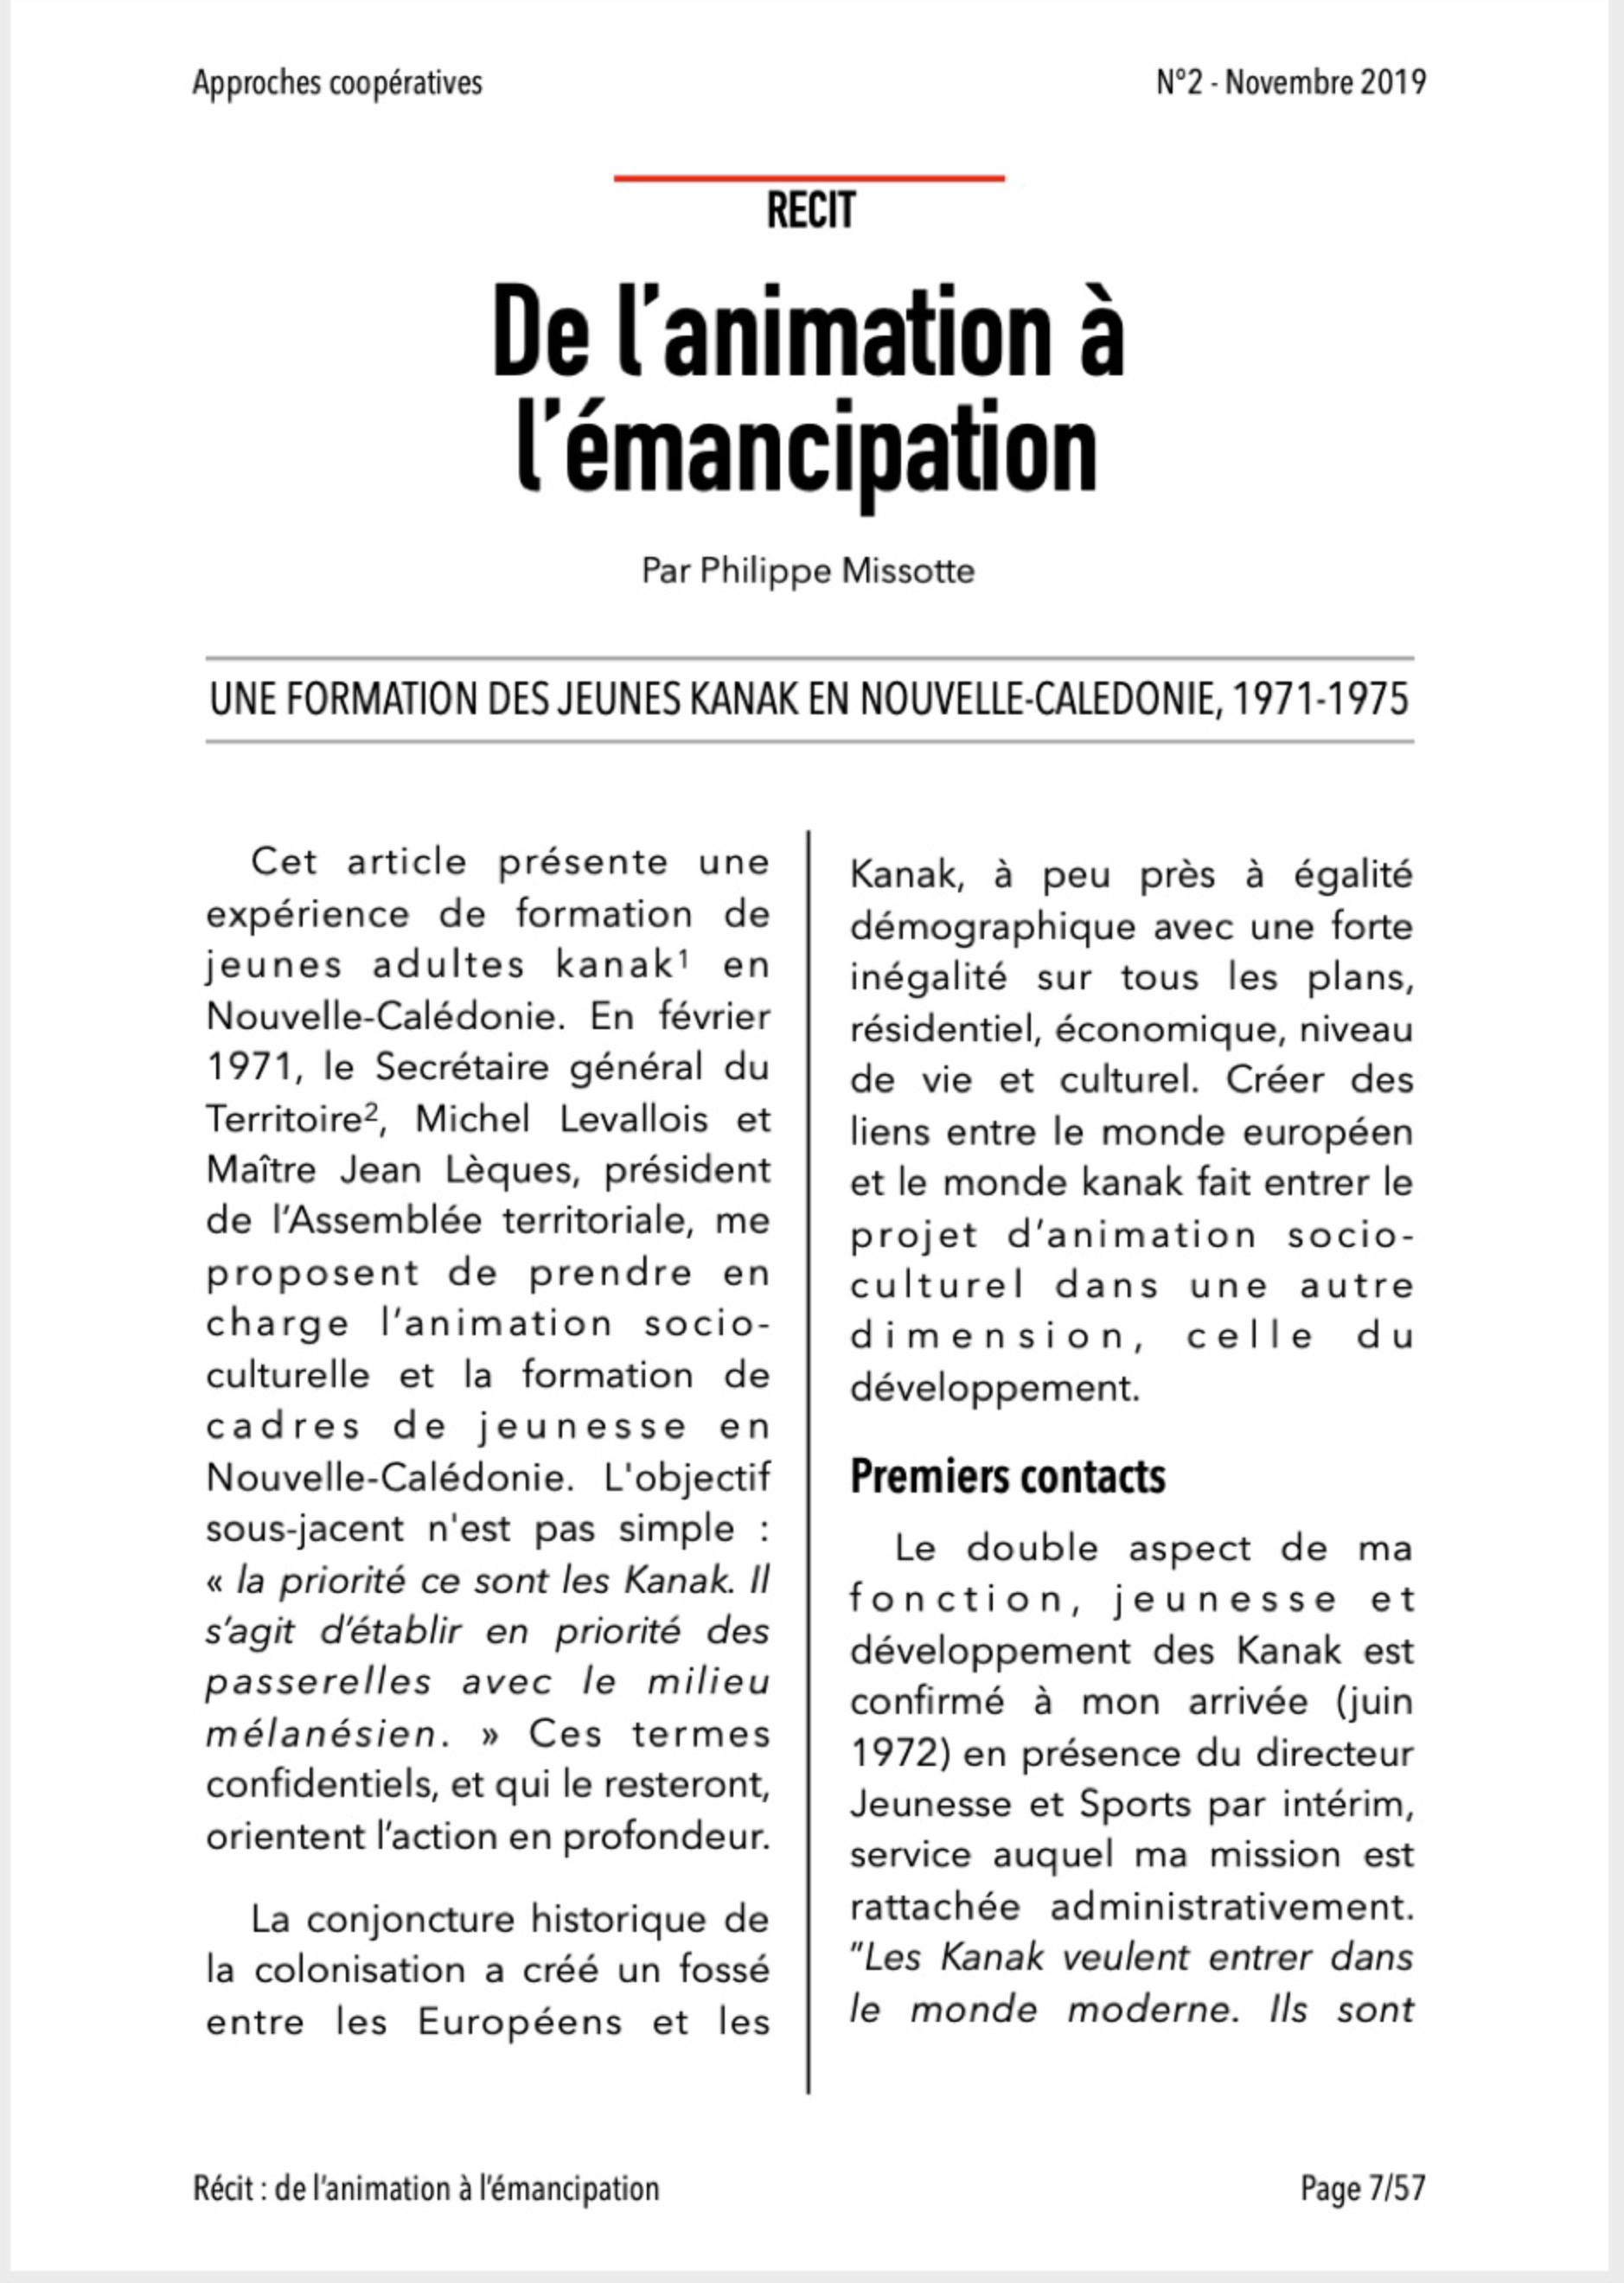 Approches Coopératives N° 2.